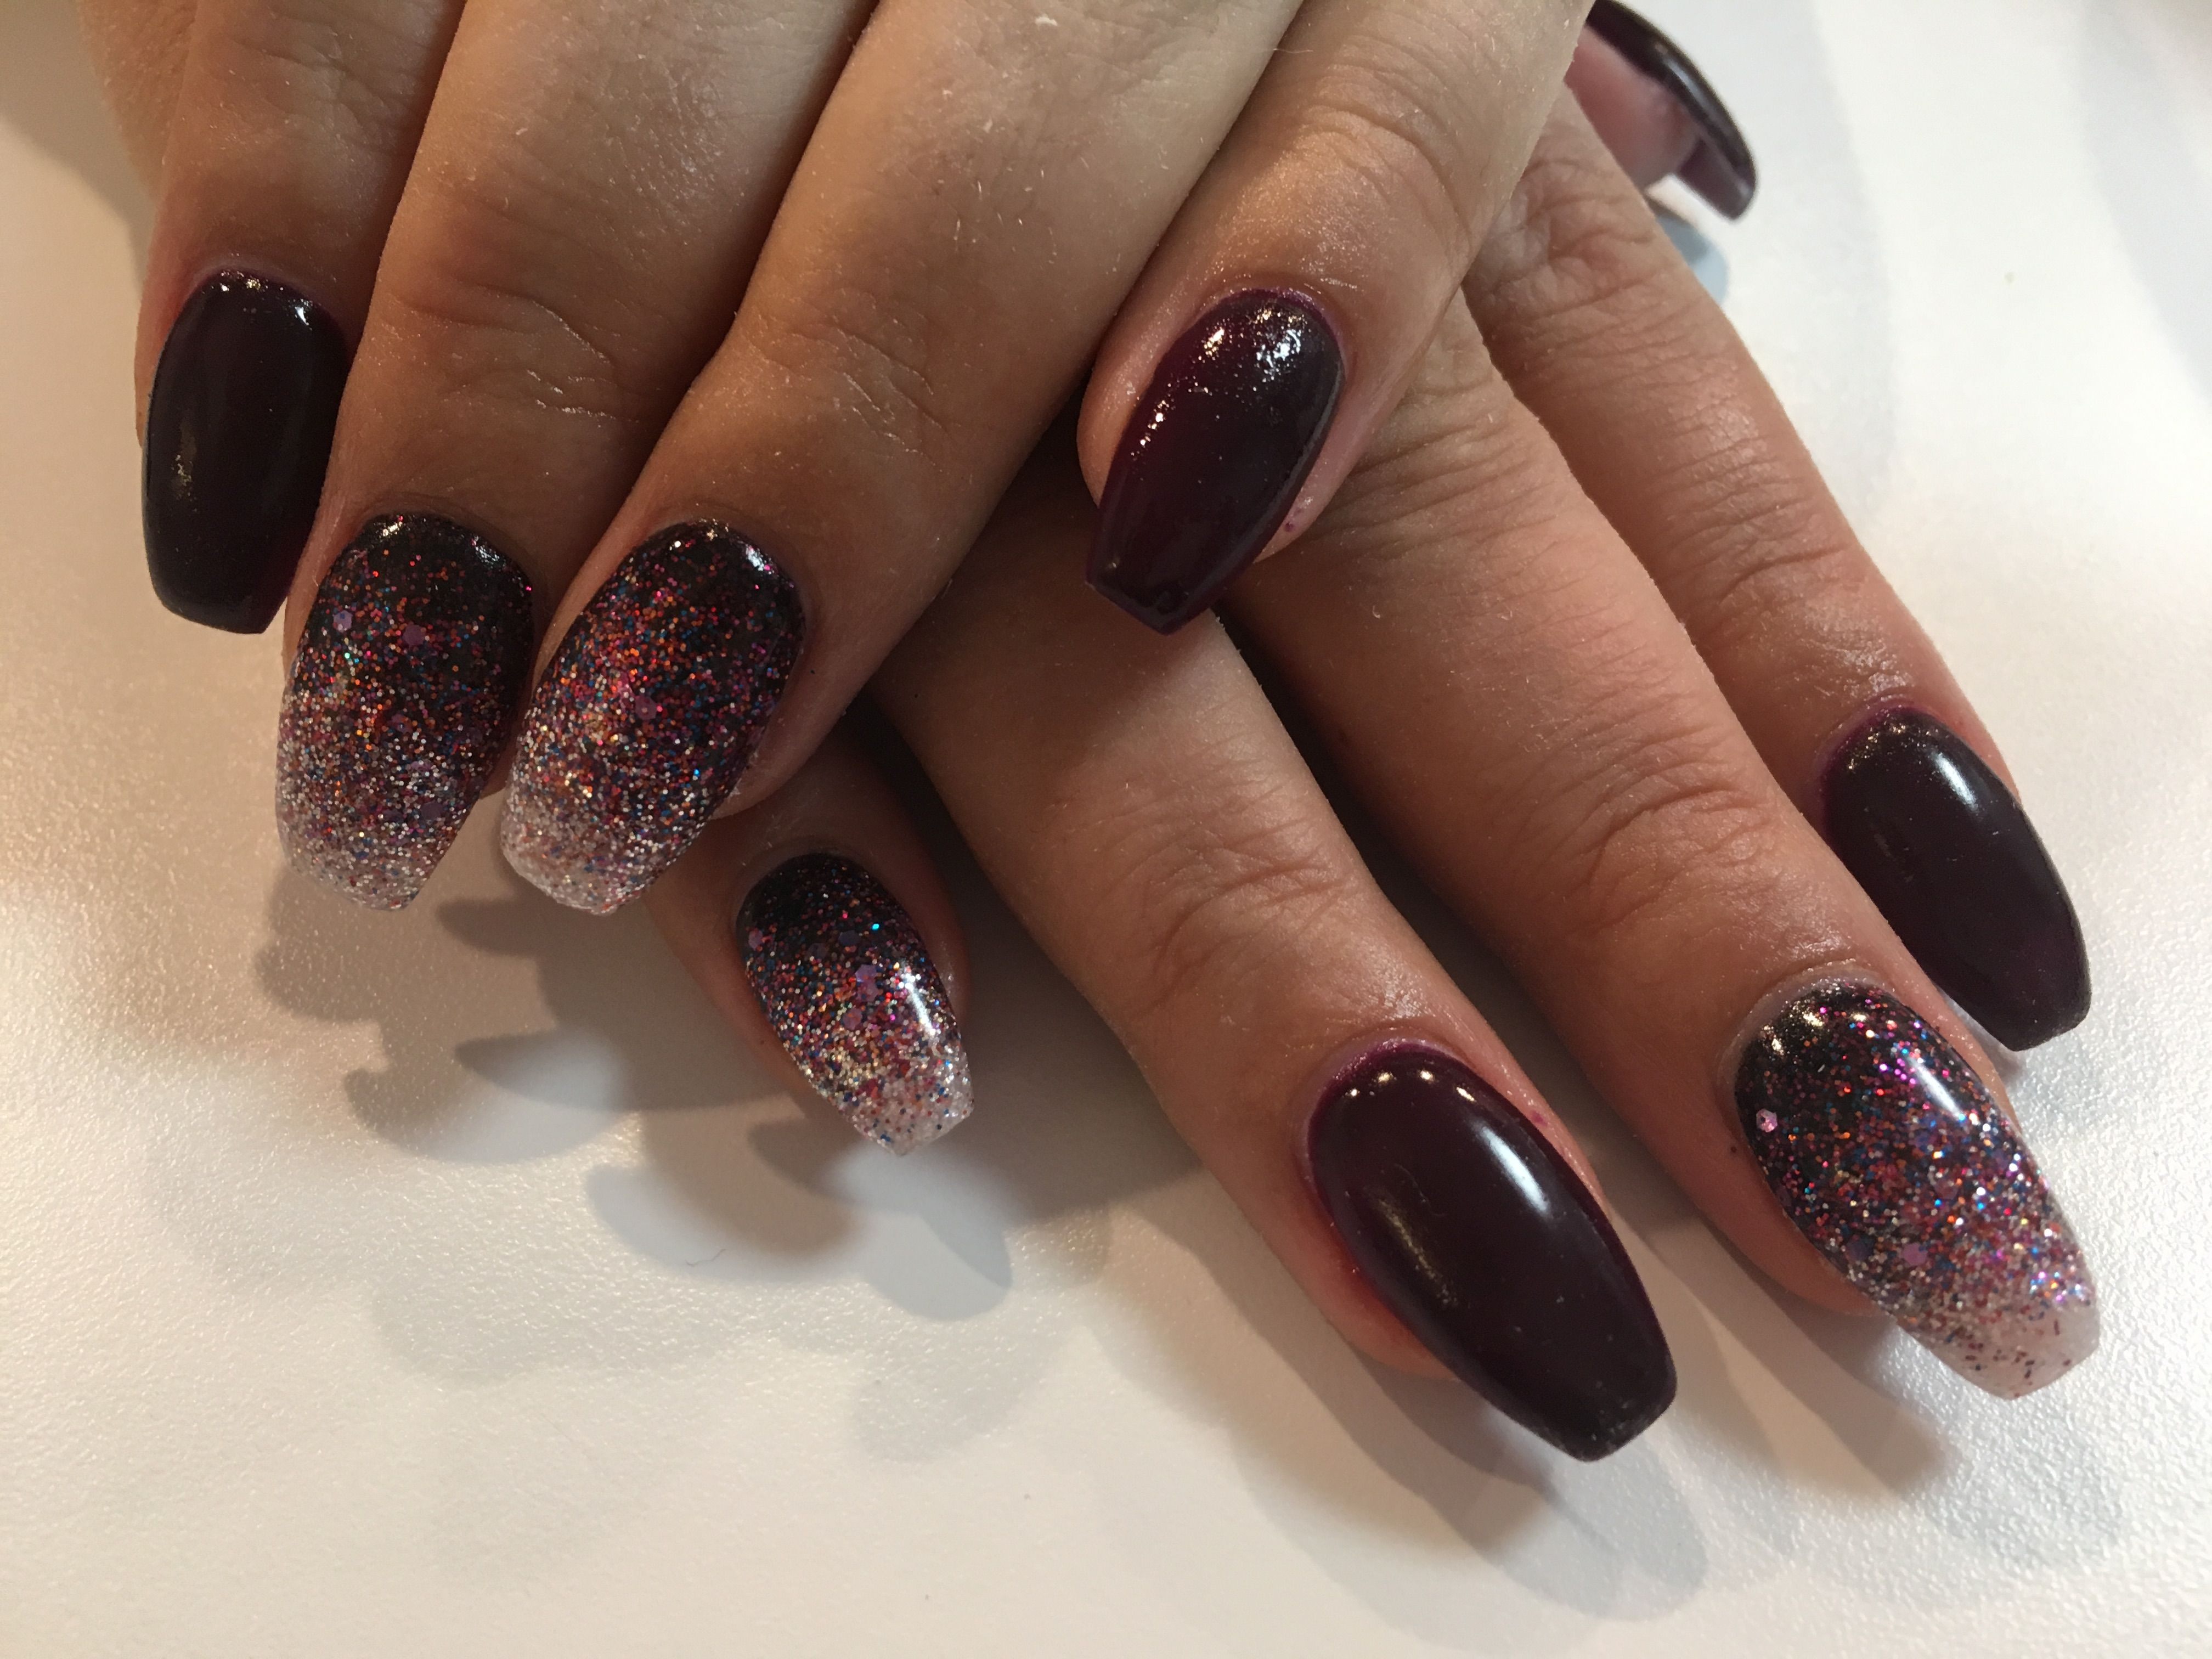 Burgundy Coffin Nails Ombre Sparkles Coffin Nails Ombre Ombre Nails Glitter Rhinestone Nails